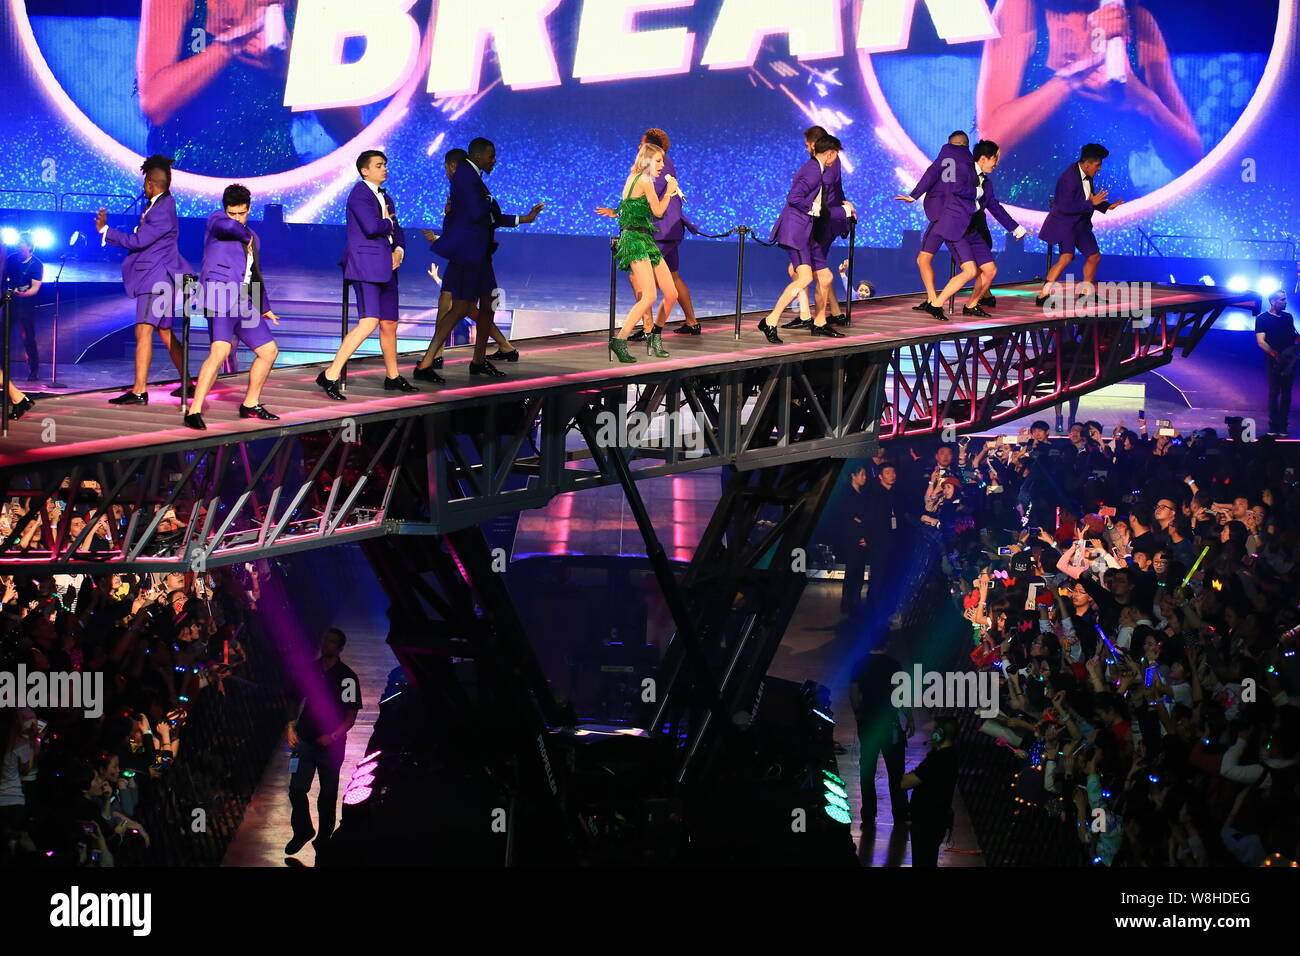 American Singer Taylor Swift Center Performs At Her 1989 World Tour Concert In Shanghai China 11 November 2015 Stock Photo Alamy